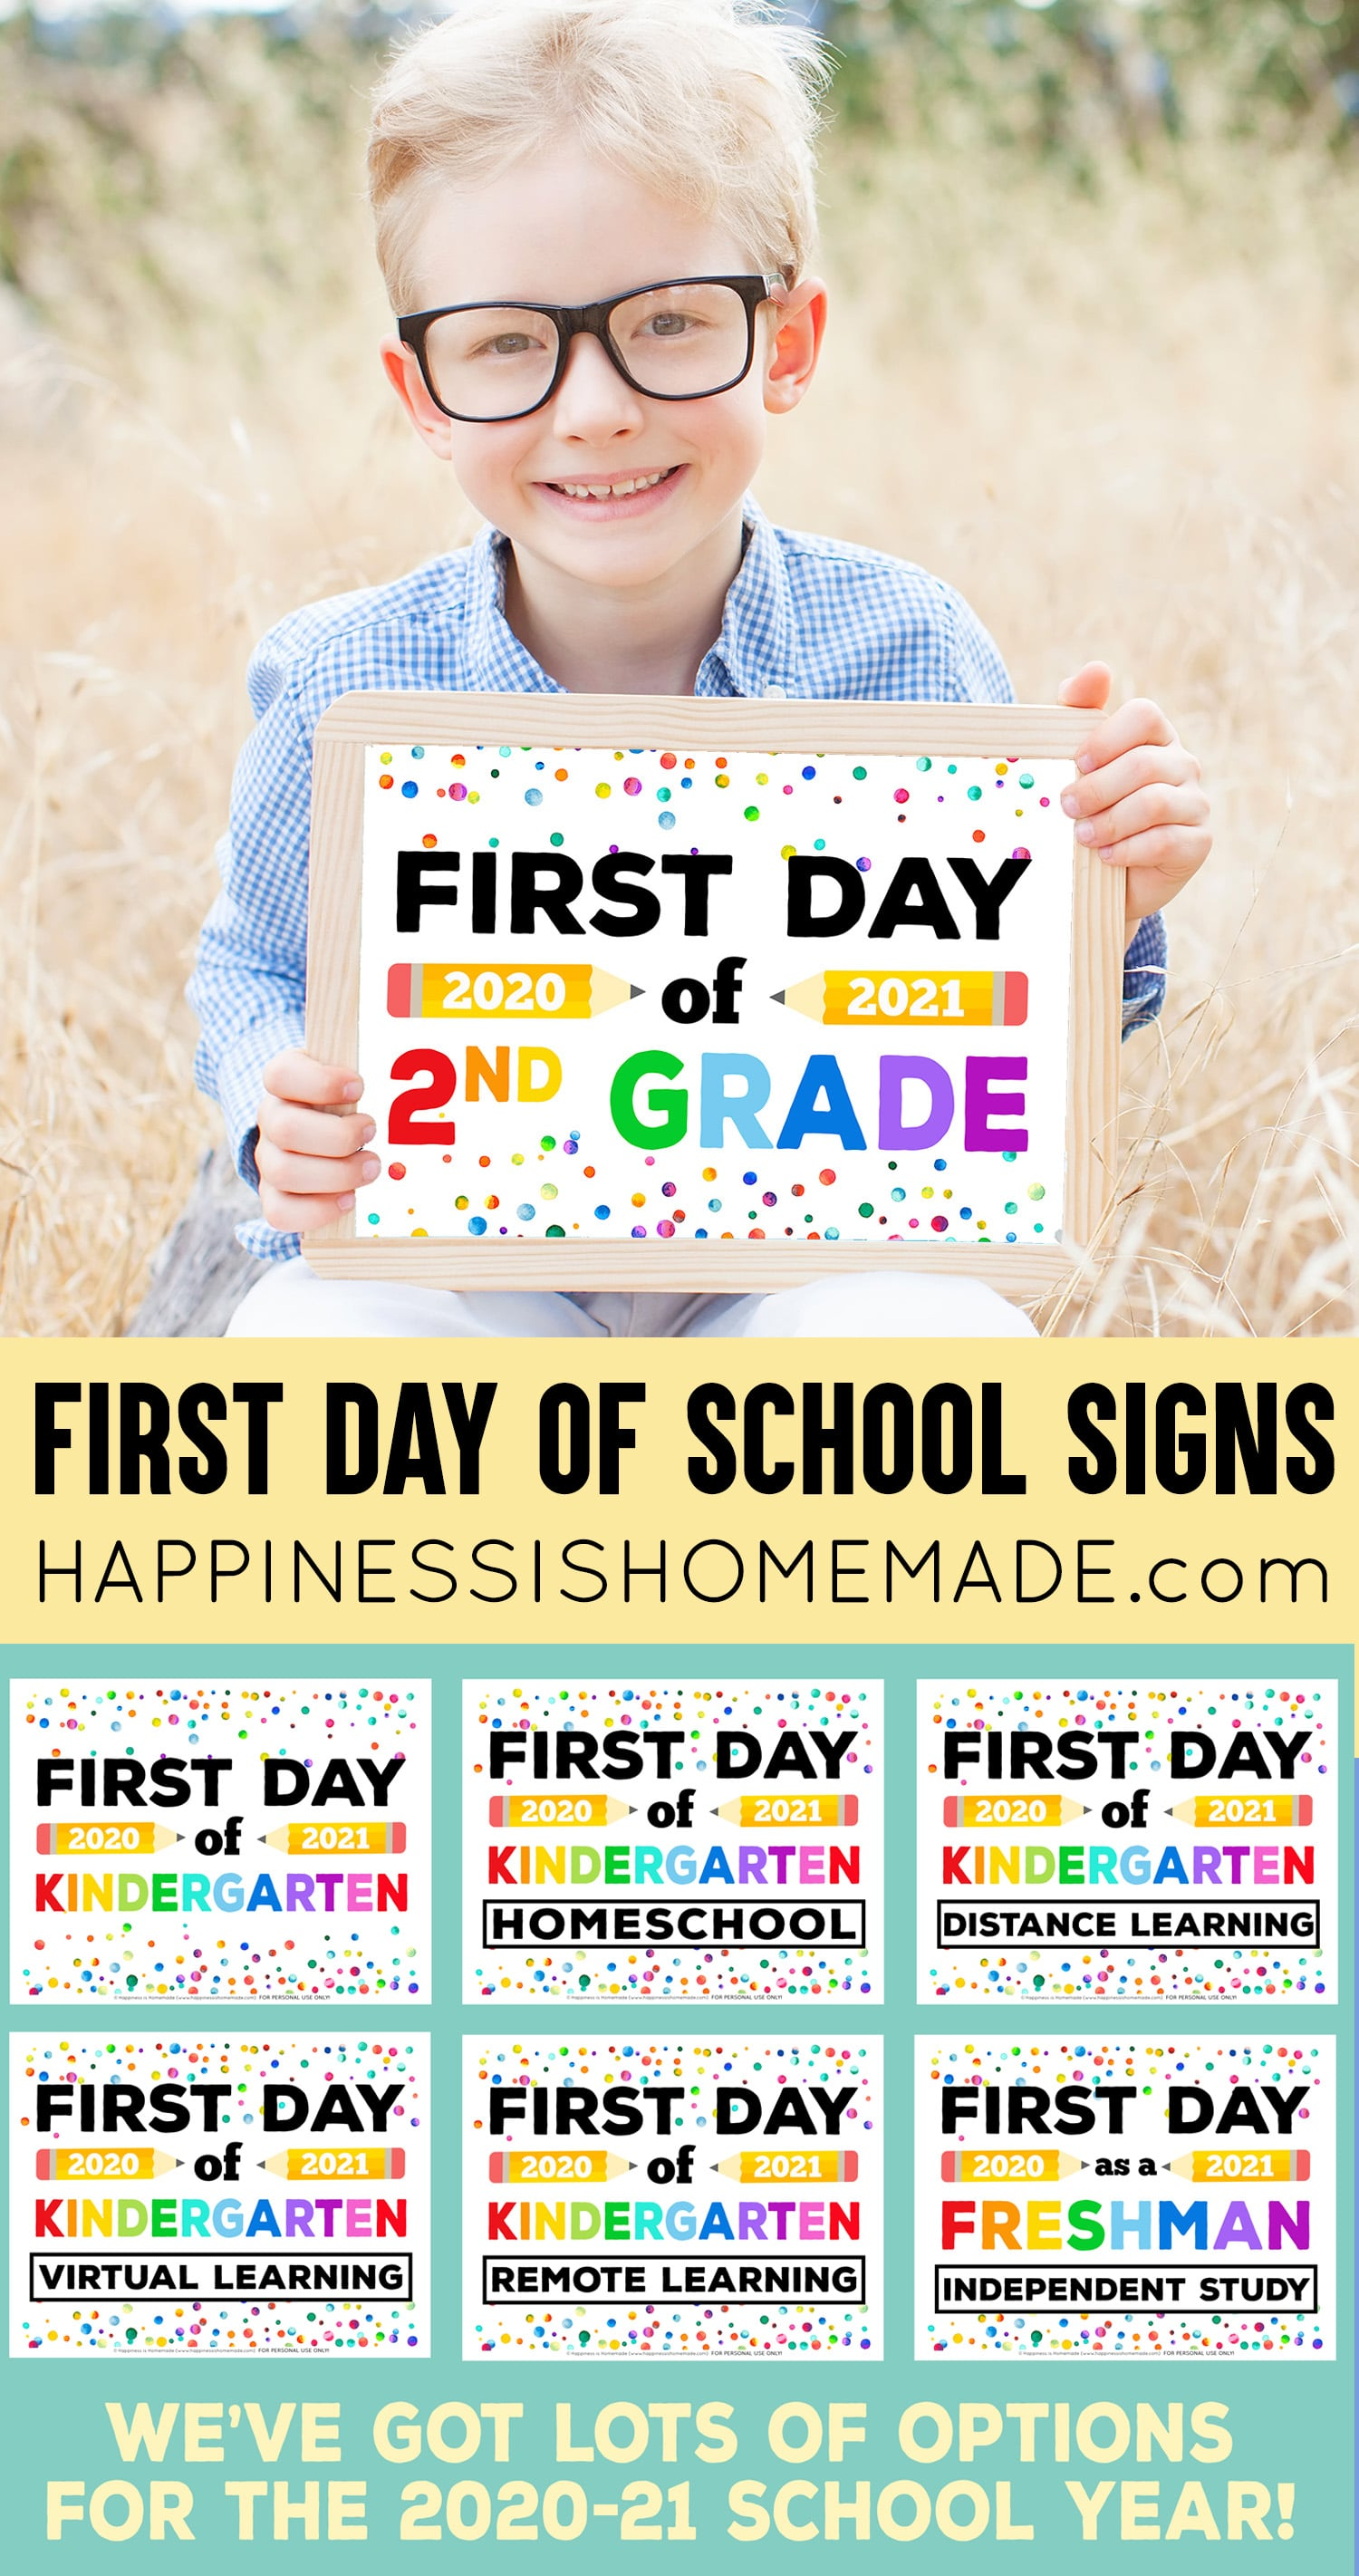 Free printable first day of school signs - distance learning, homeschool, virtual learning, independent study, remote learning, etc. collage